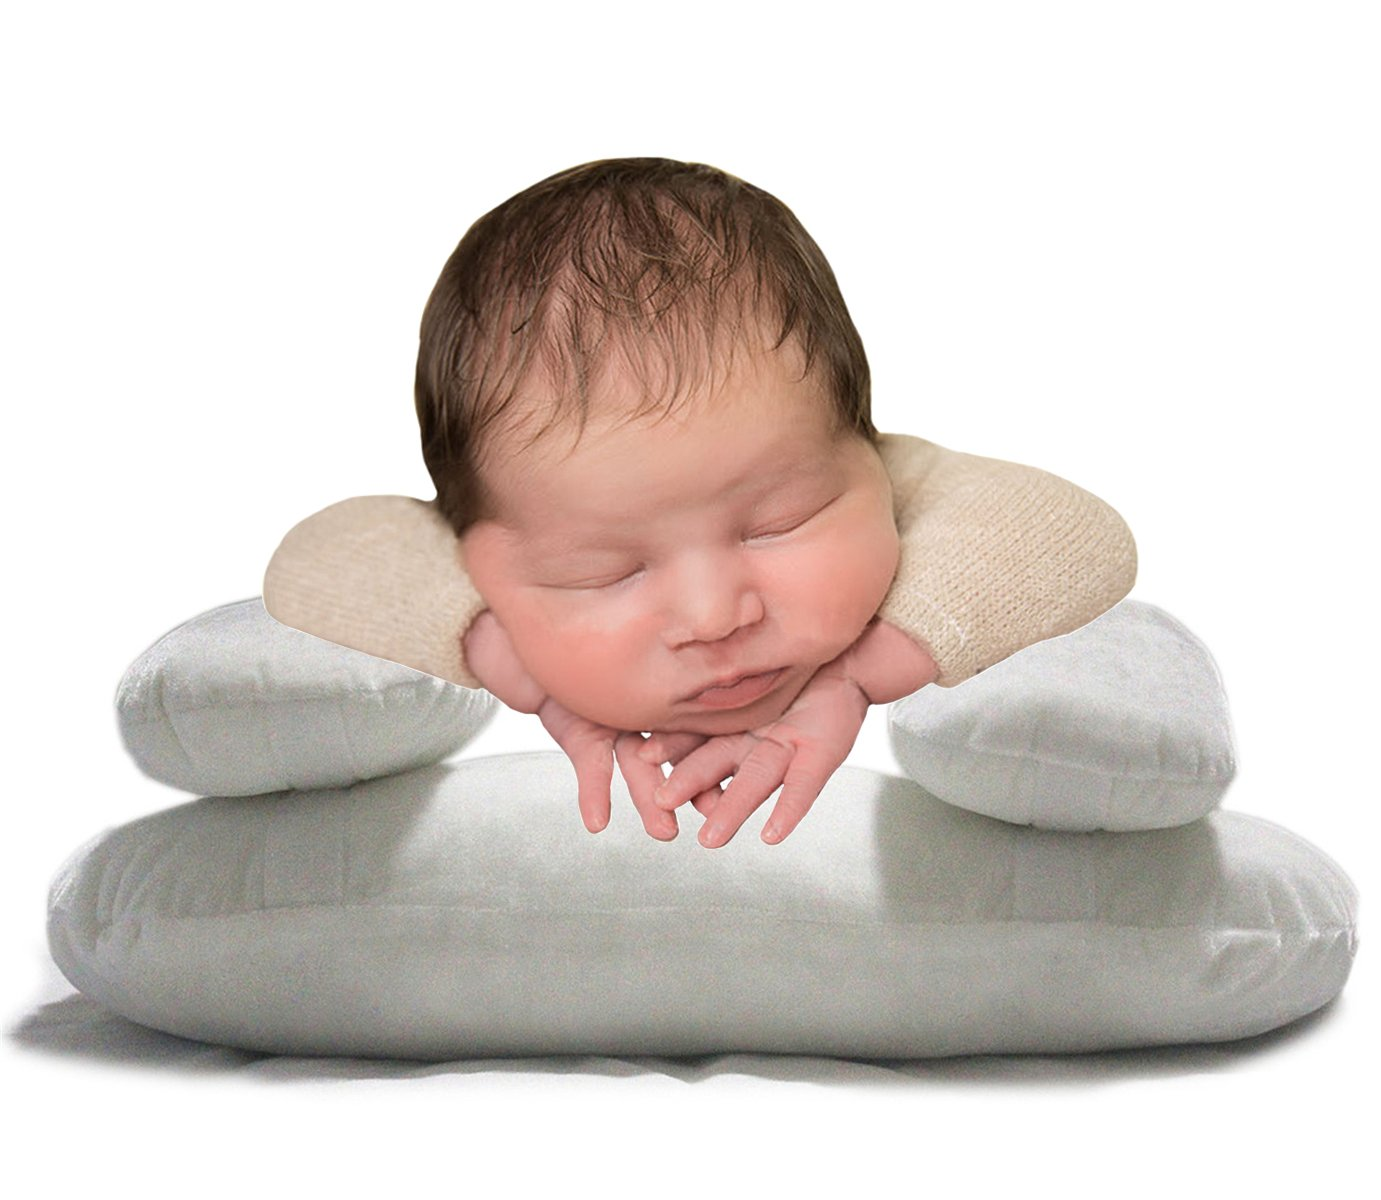 M&G House Newborn Photography Posing Pillow Baby Cushion Pillow Basket Filler Photo Props